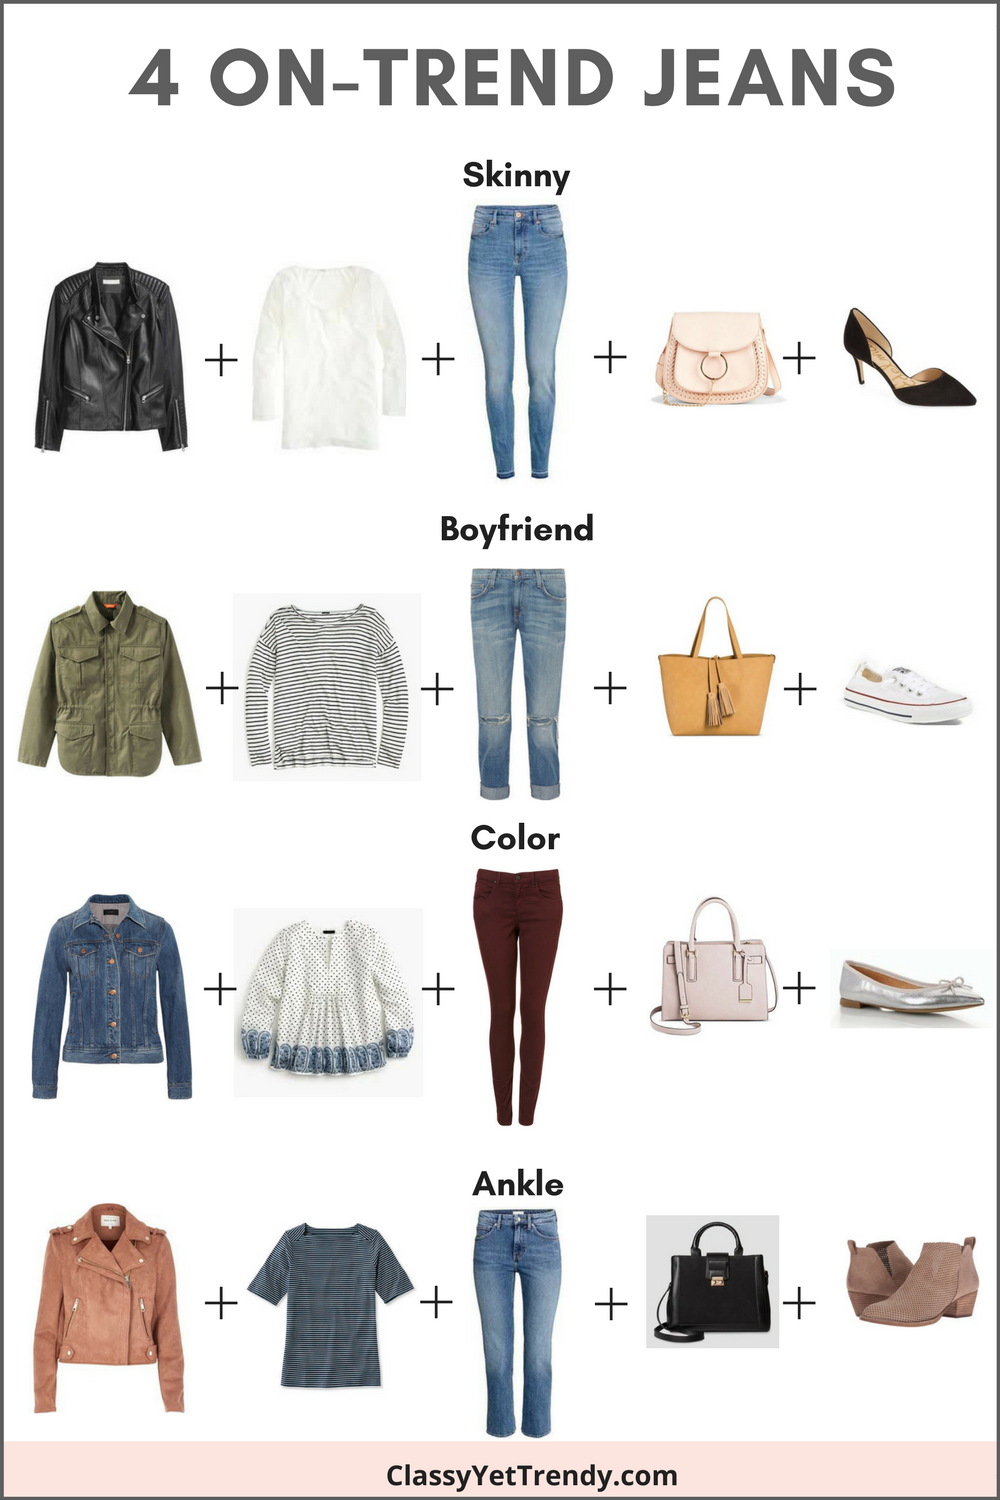 4 On Trend Jeans Outfit Ideas Classy Yet Trendy How To Wear Denim Jacket Classy Yet Trendy Jean Outfits